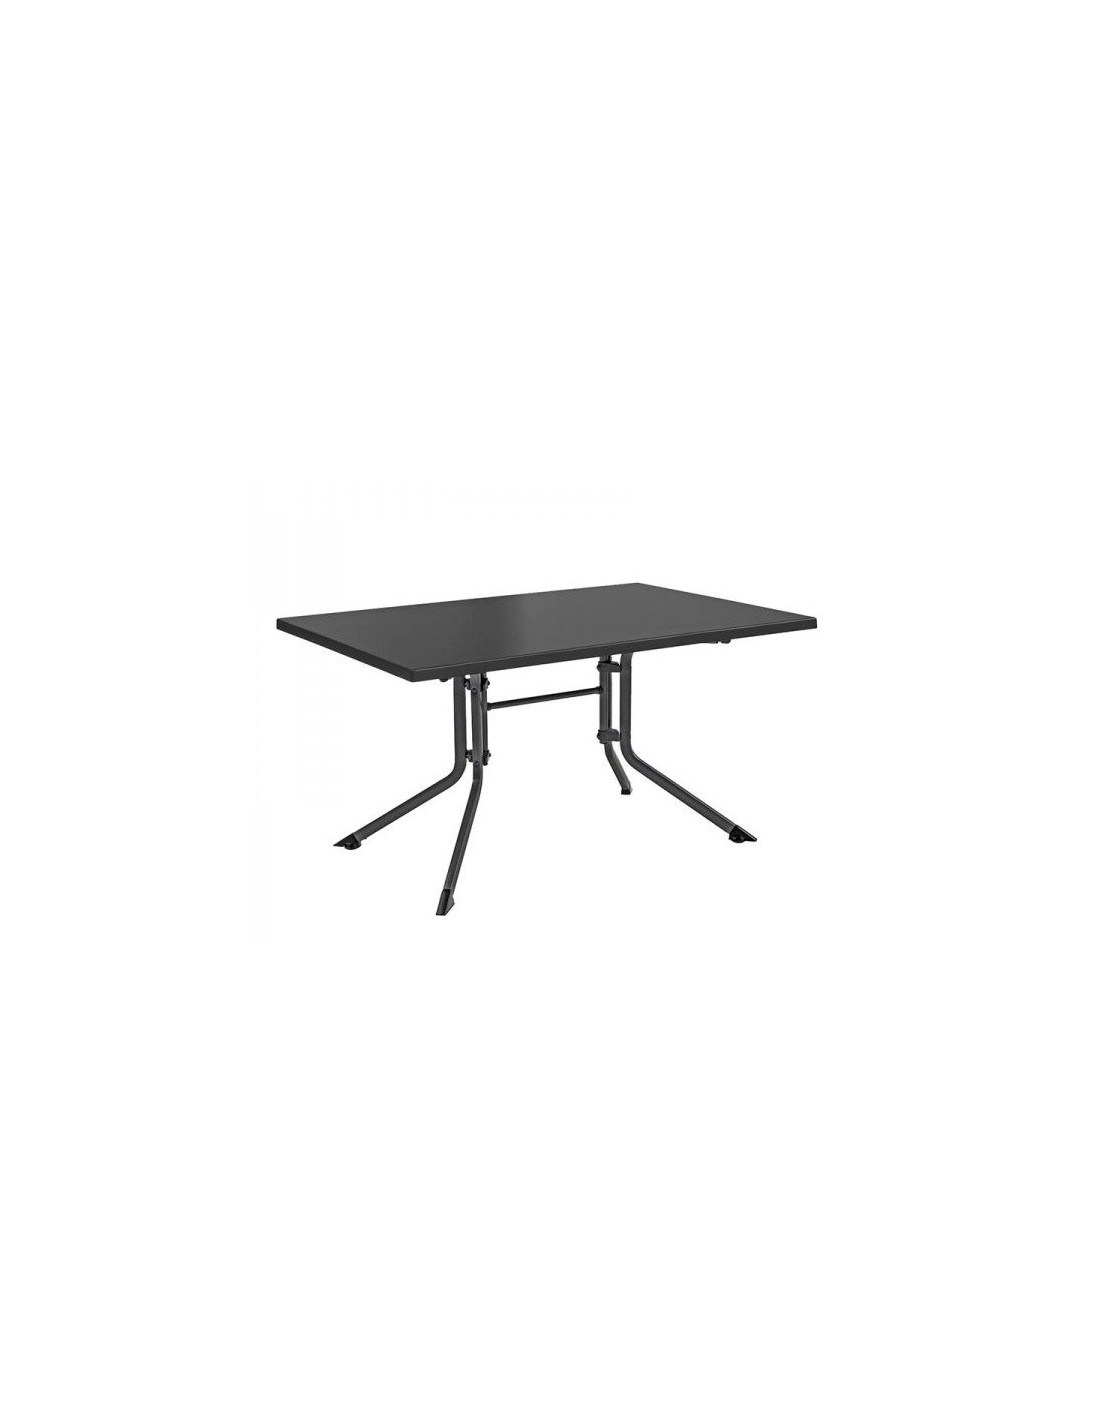 Table de jardin pliante carr e en aluminium mod le advantage - Table pliante aluminium ...